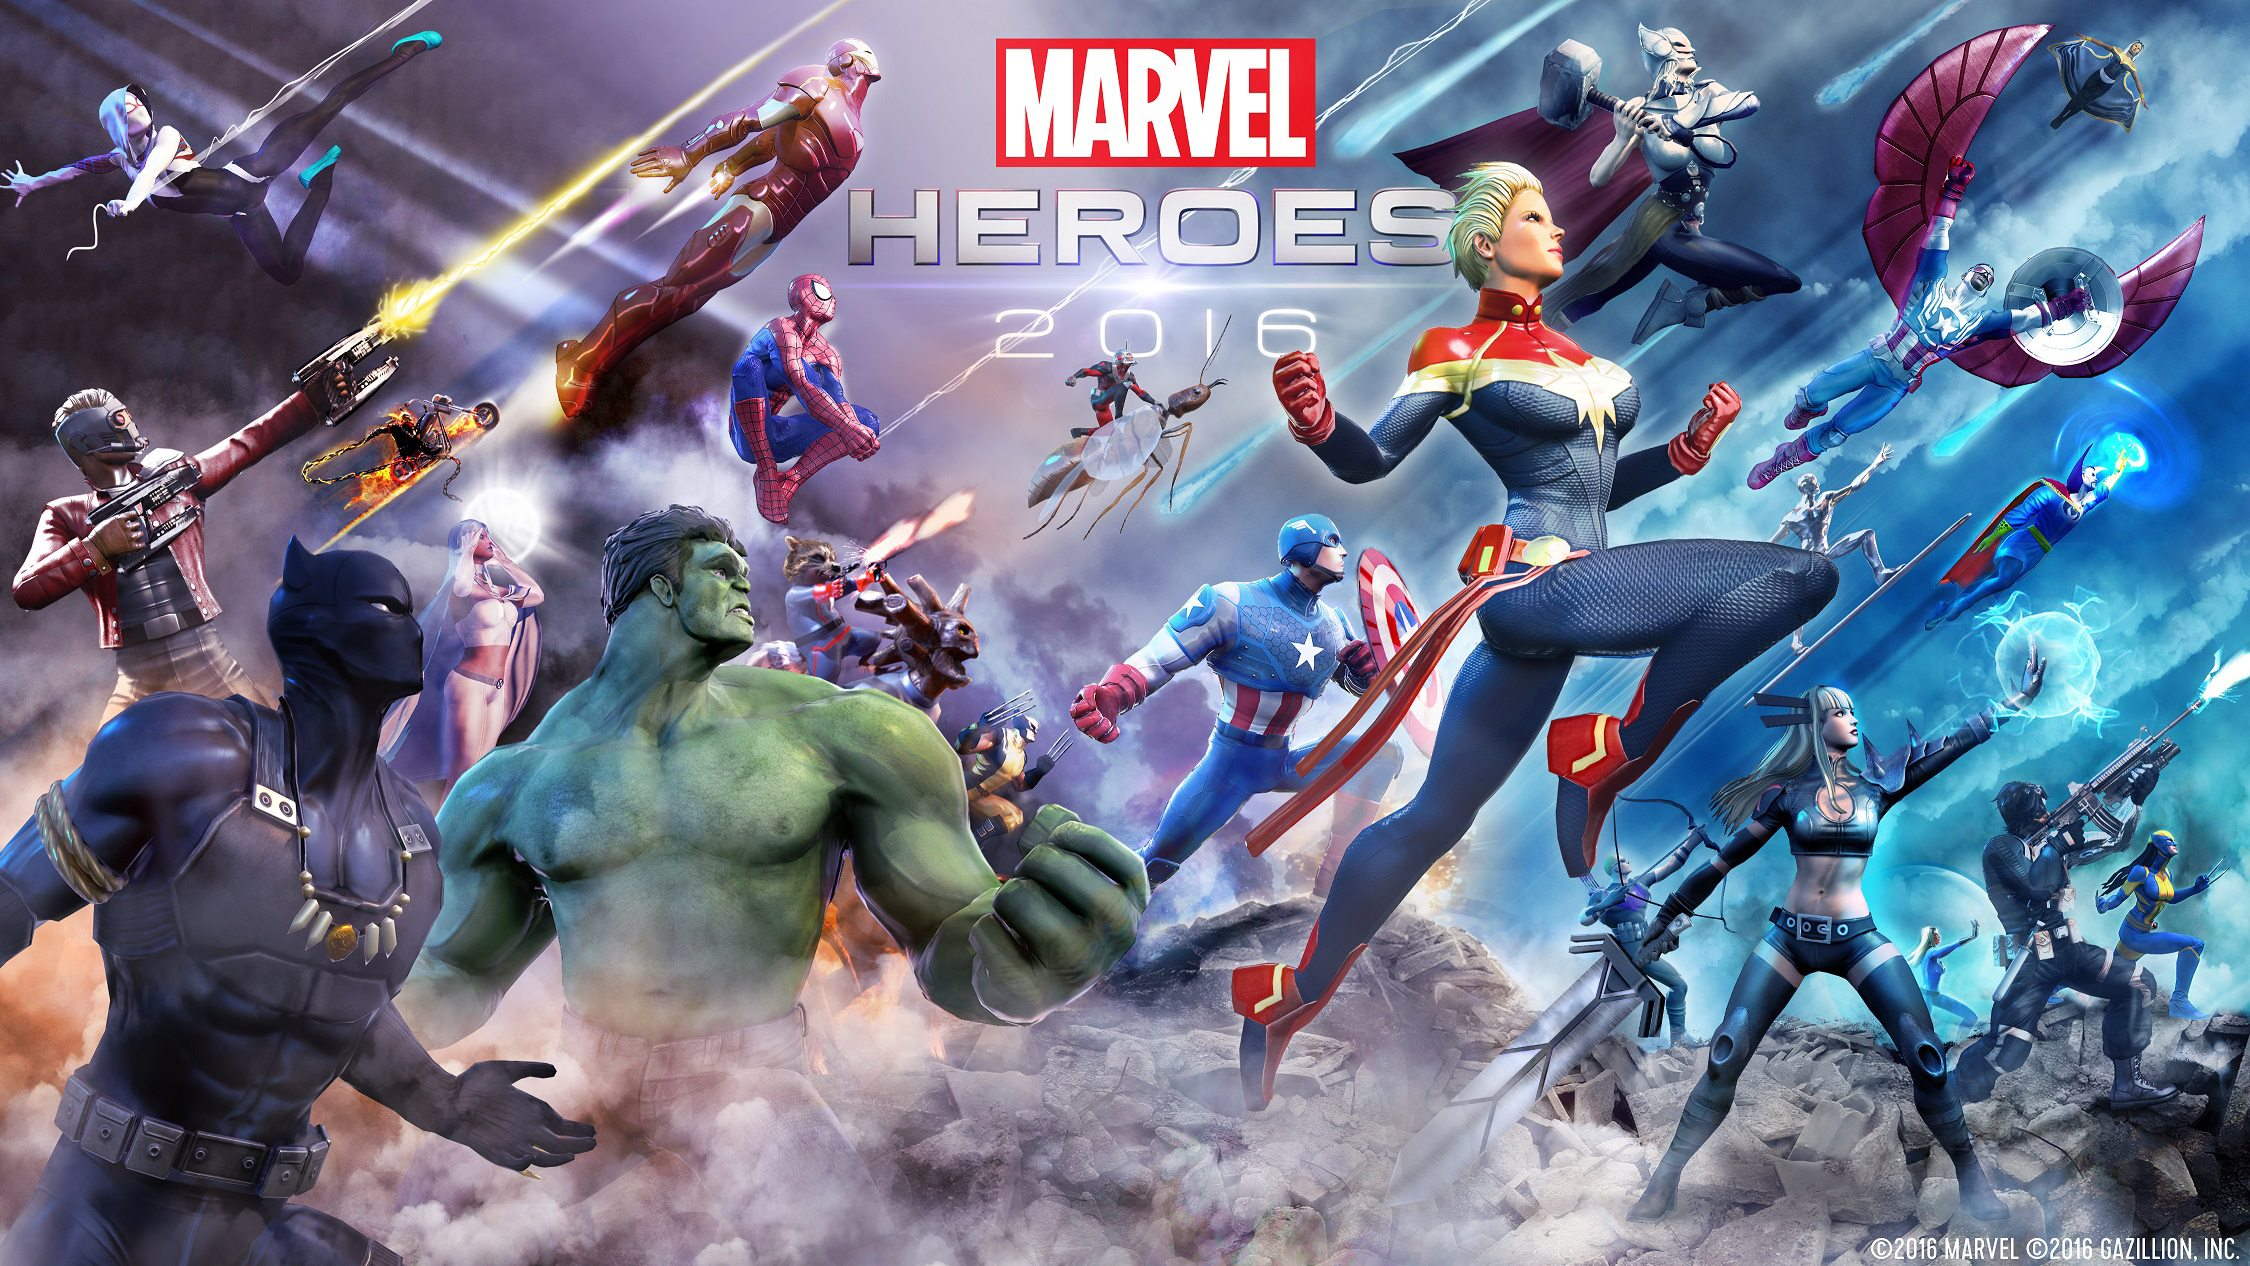 Ubitus Tech Allows for InstaPlay of Gazillion's Marvel Heroes 2016